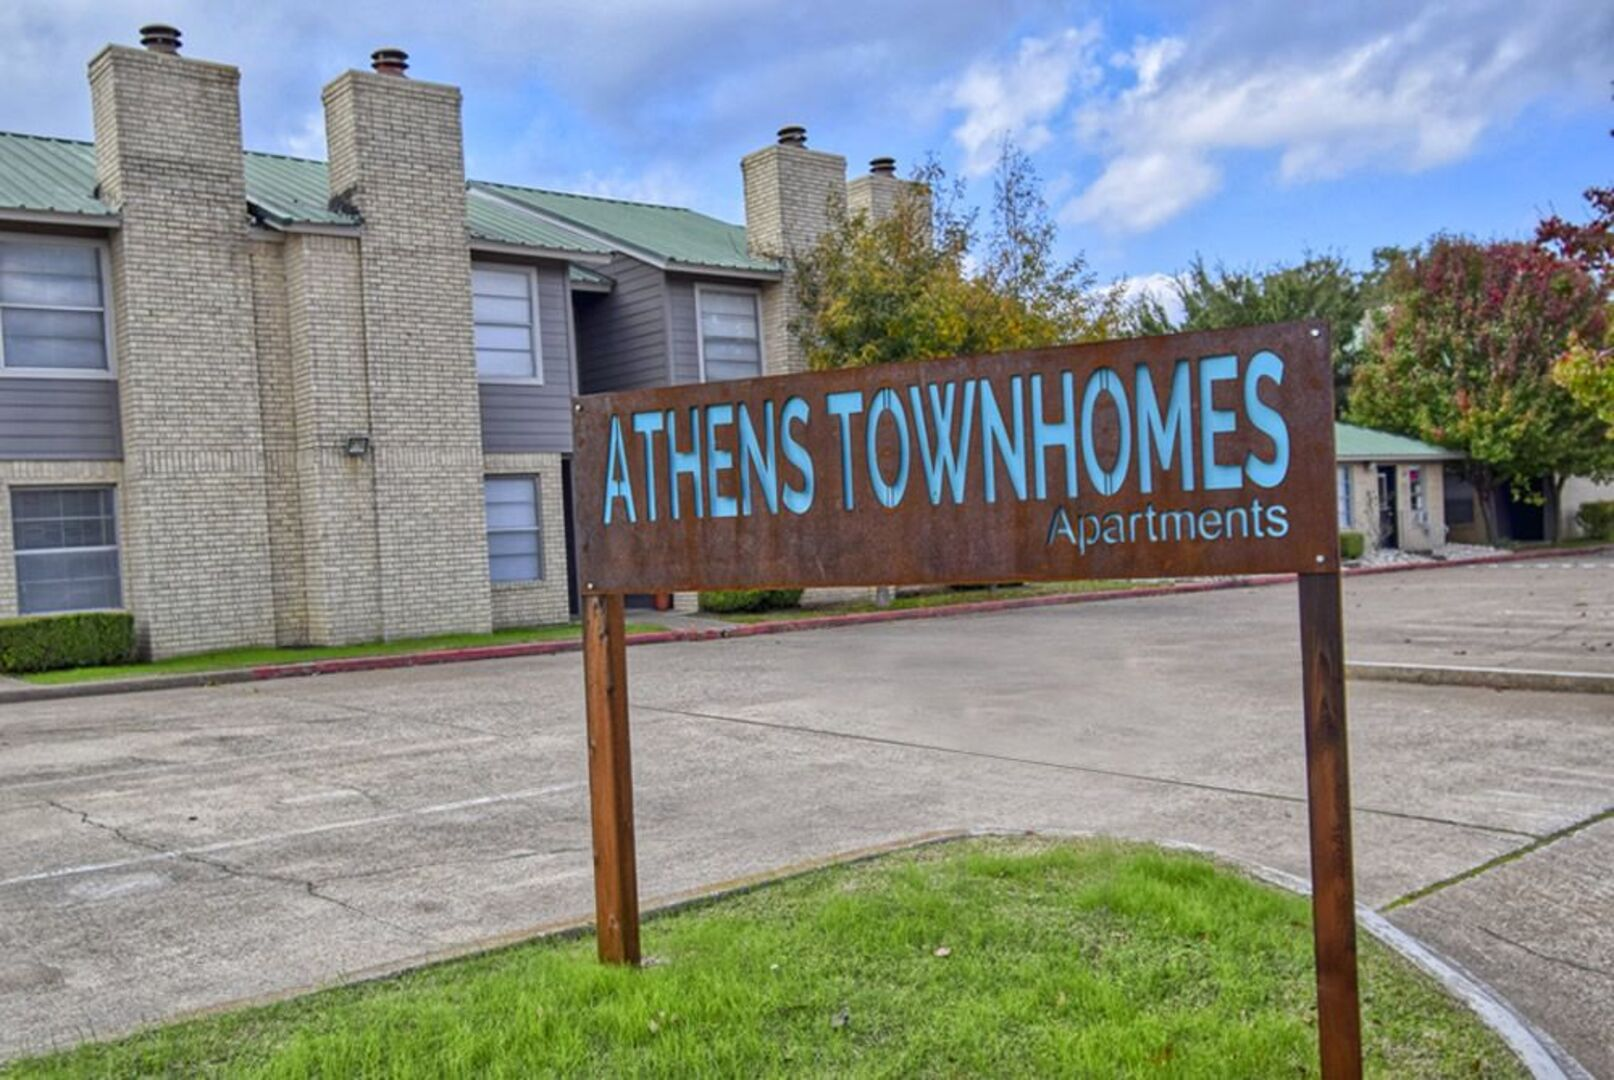 Apartments for Rent in Athens, TX | ATHENS TOWNHOMES - Home